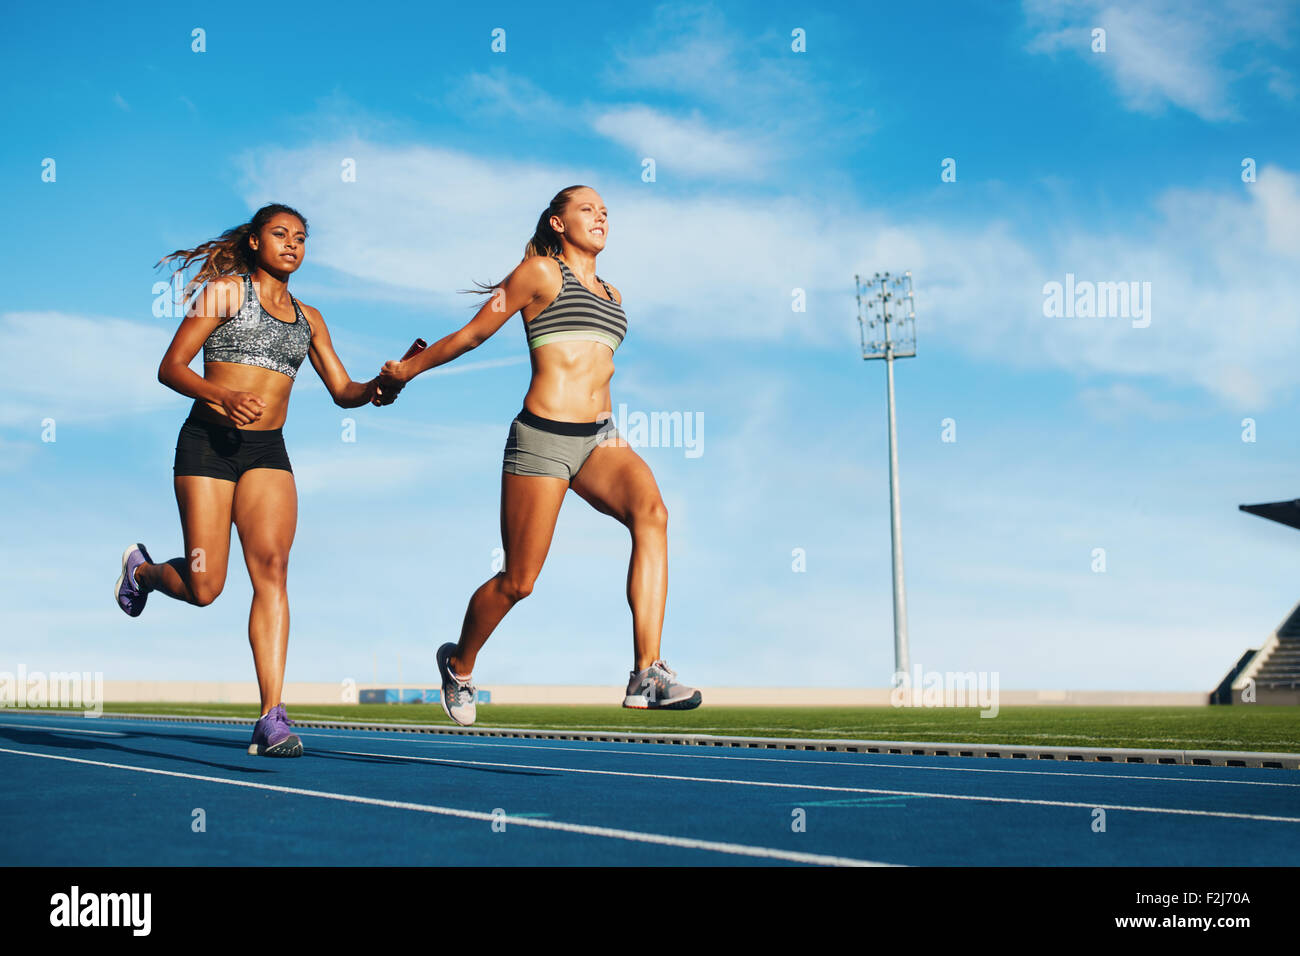 Young woman running a relay race and giving relay baton to her teammate. Female runner passing the relay baton during - Stock Image